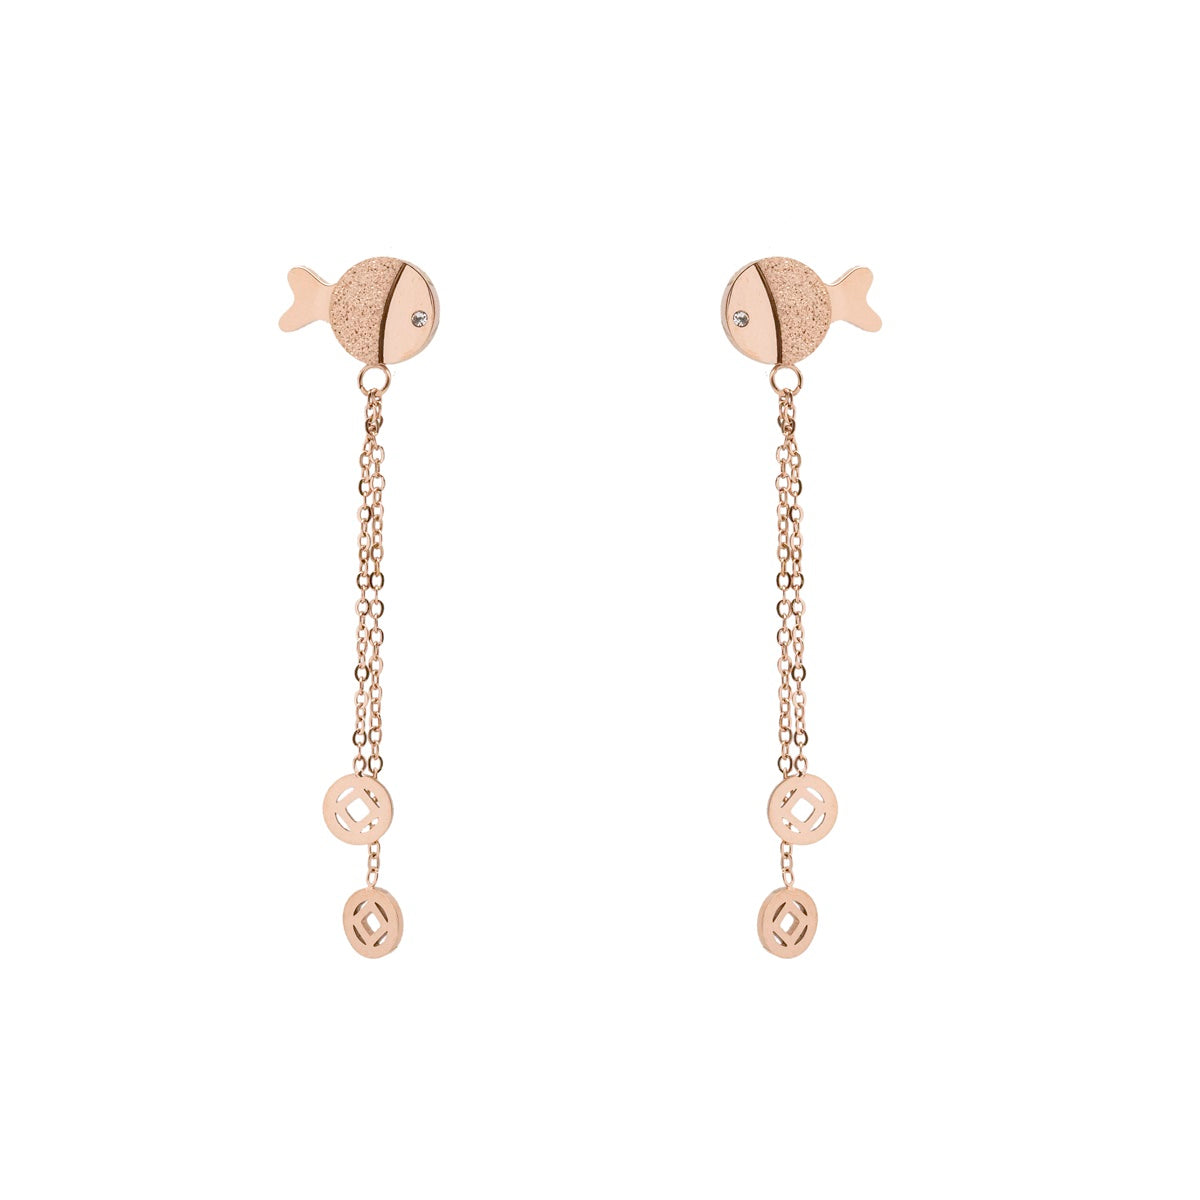 Glazy Swinging Fish Earring - Kiyara